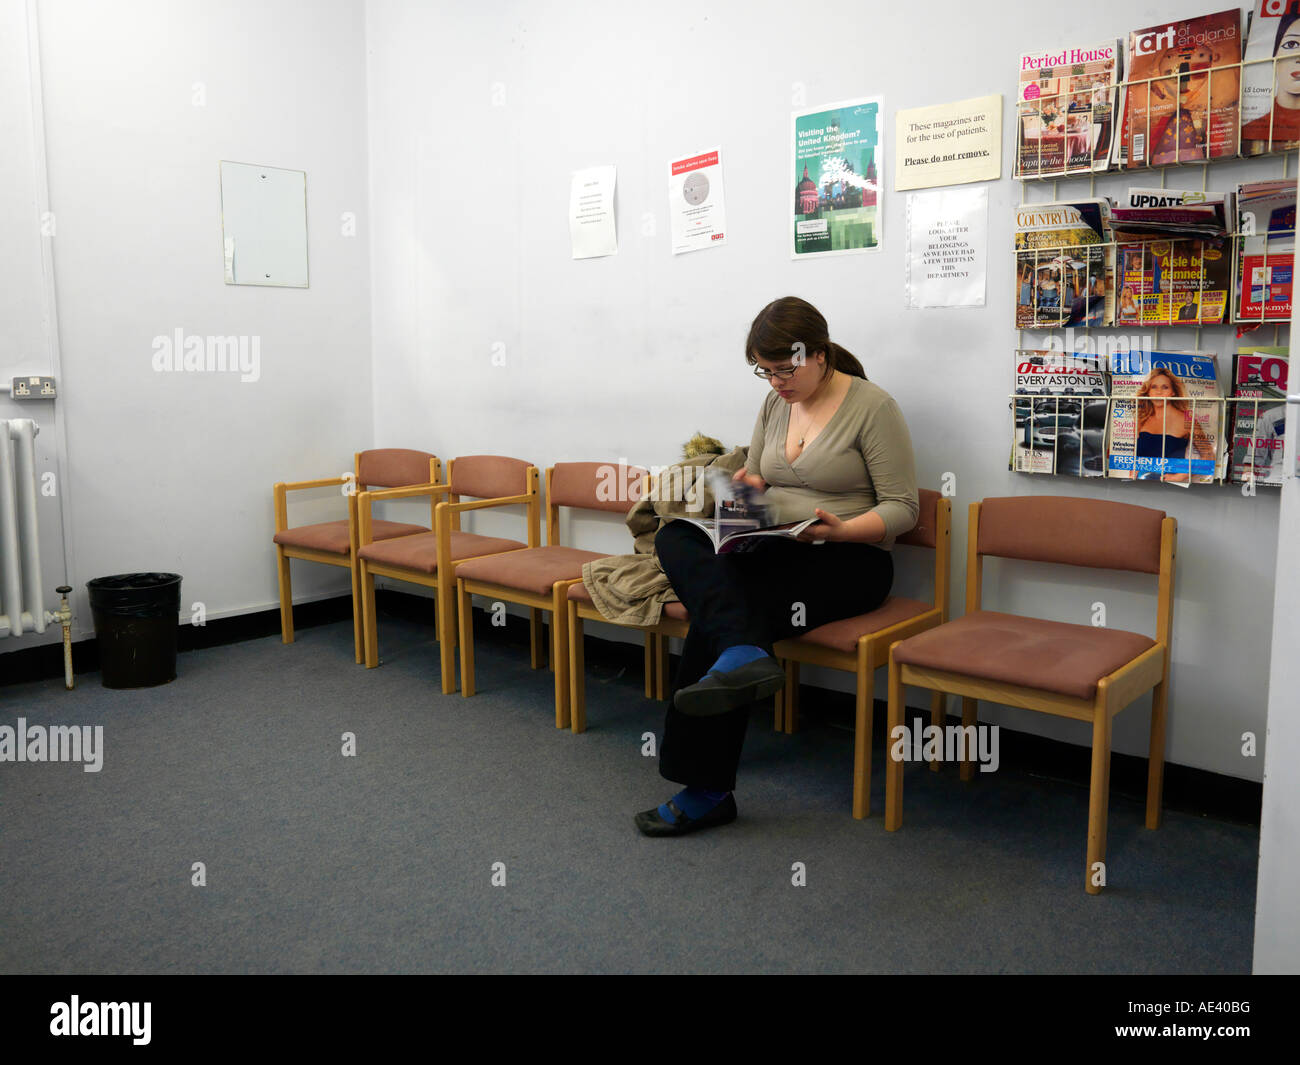 hospital waiting room essays 0 categories: quest blog urdu essay for 2nd year year dissertation plan structure concours owner appreciating nature essay emerson the great gatsby american dream.